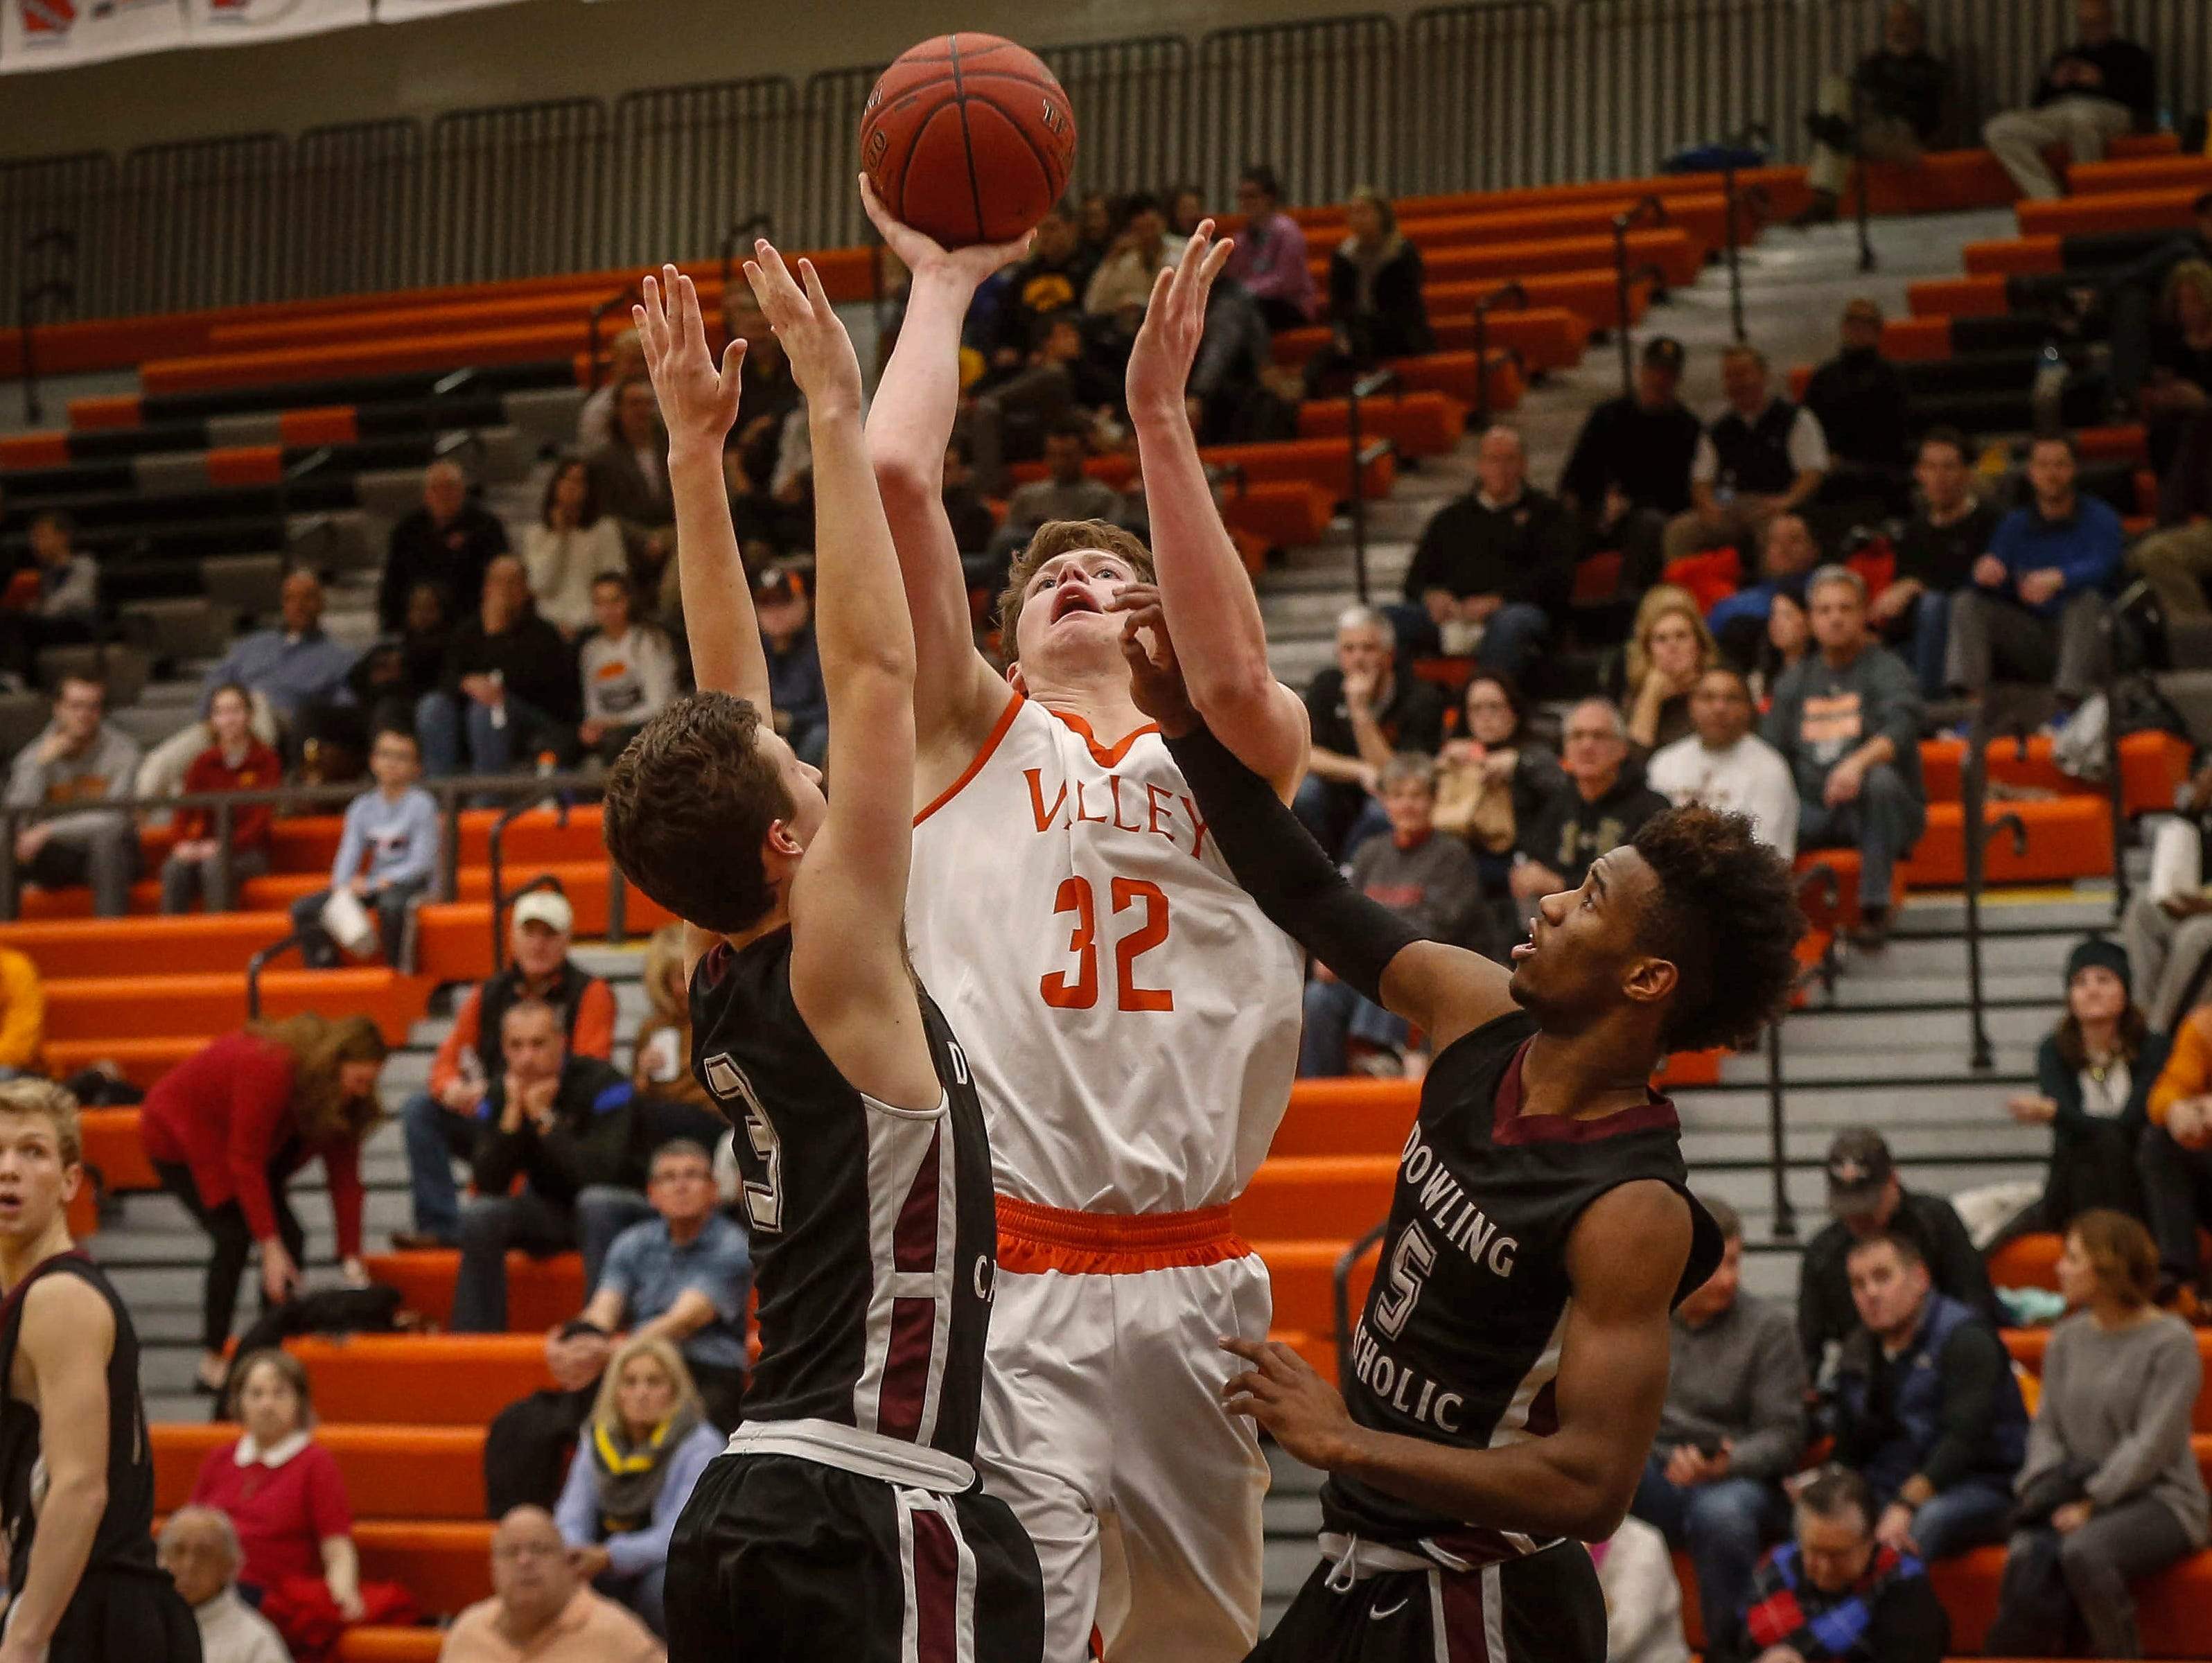 Valley senior Charley Crowley puts up a shot against Dowling Catholic on Tuesday, Jan. 10, 2017, at Valley High School in West Des Moines.